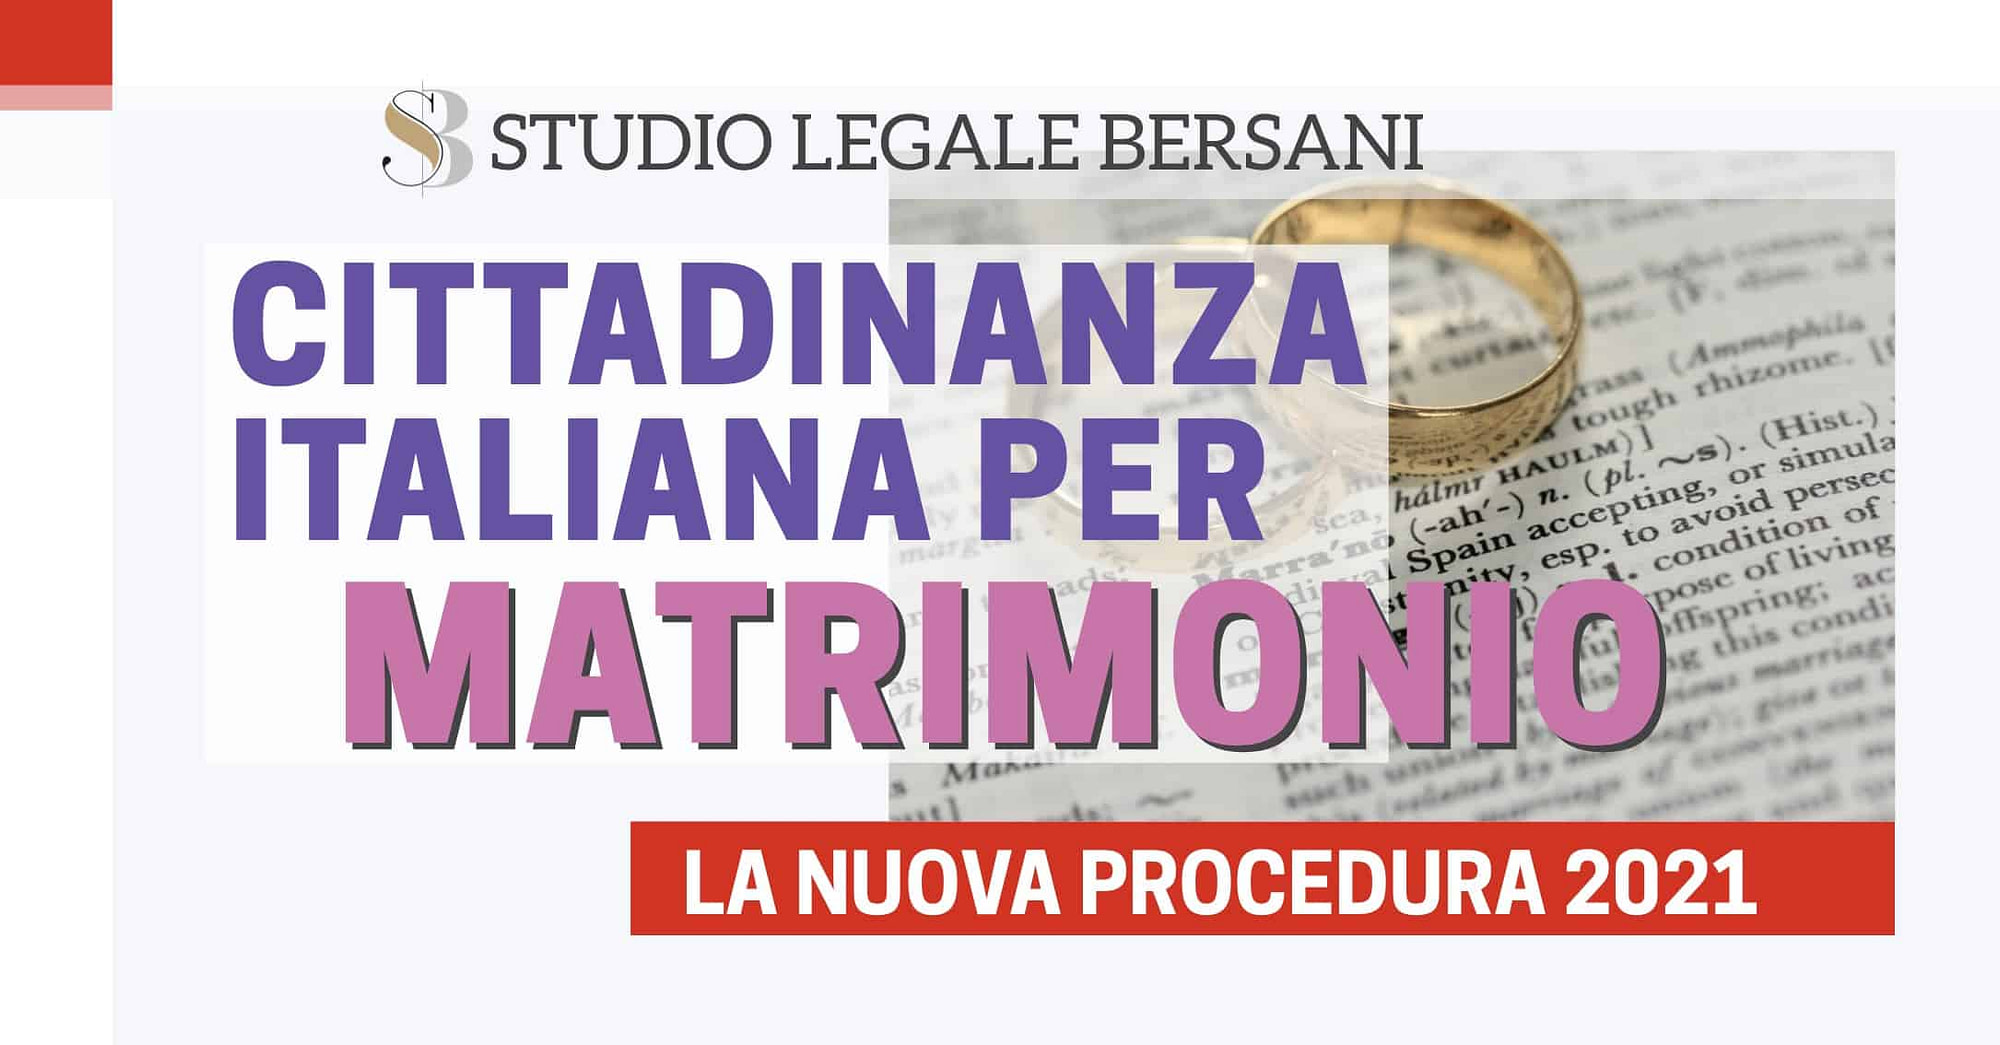 CITTADINANZA-ITALIANA-PER-MATRIMONIO-2021-PROCEDURA